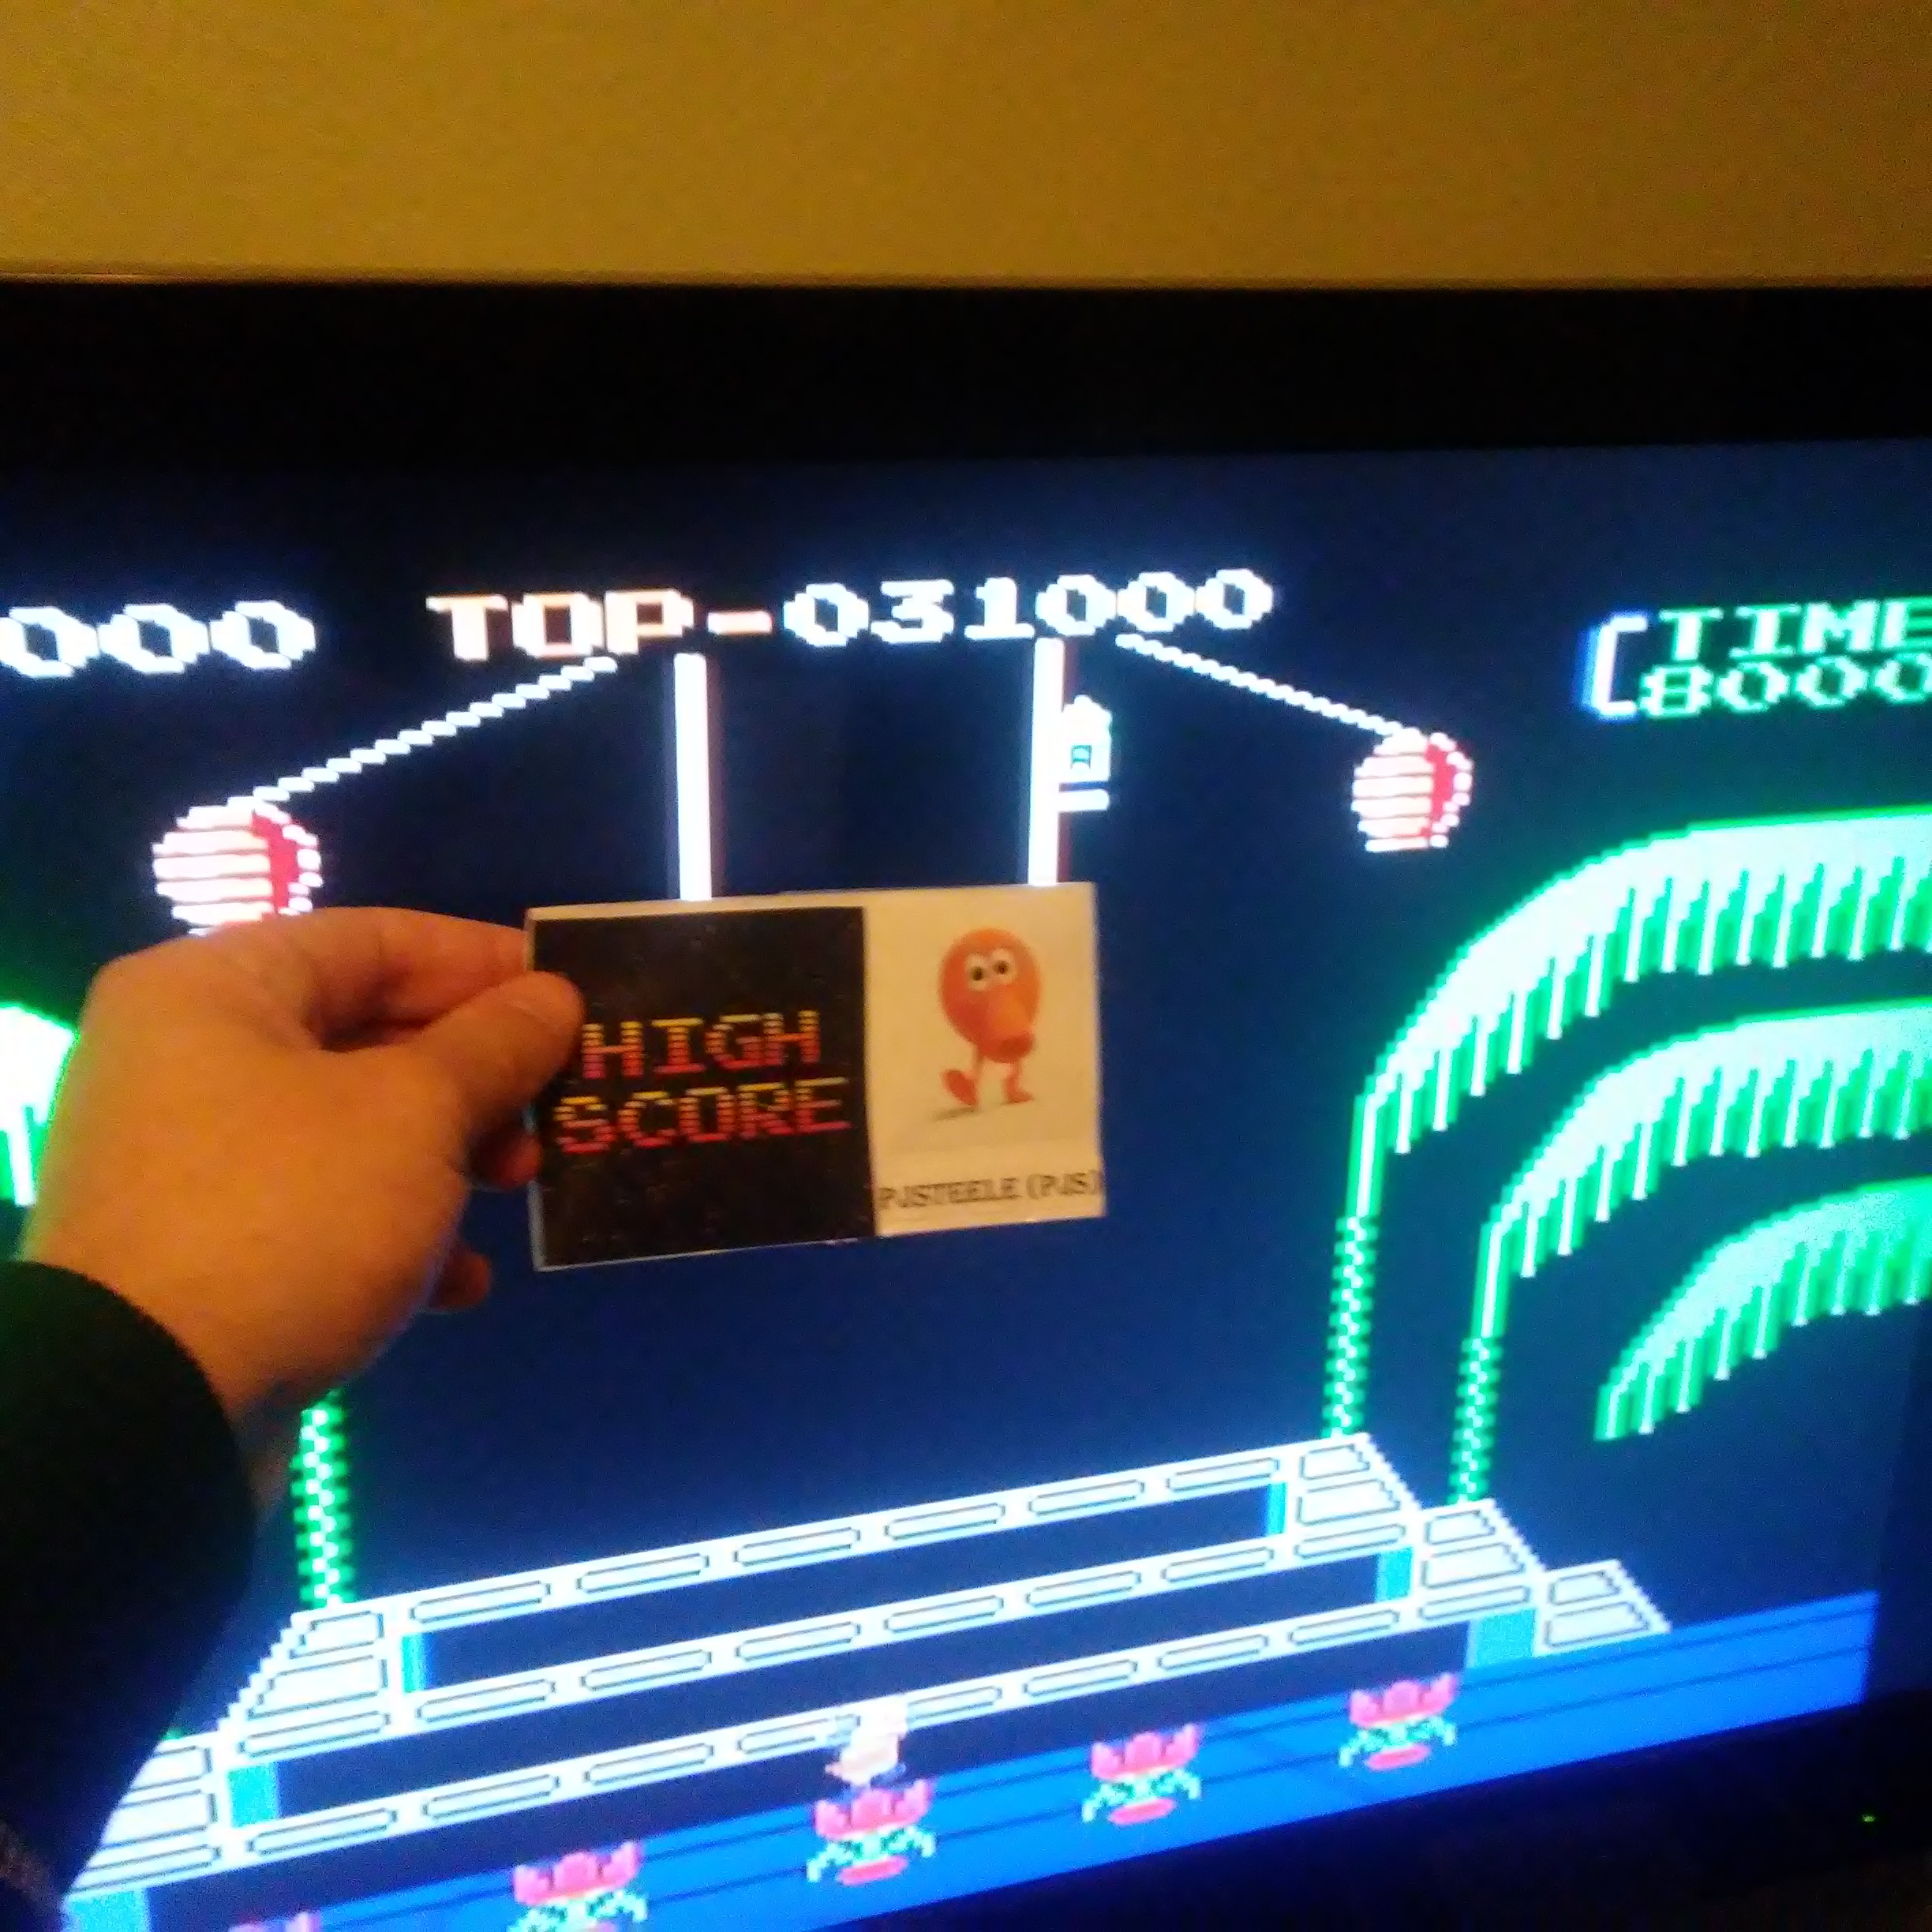 Donkey Kong 3: Game A 31,000 points